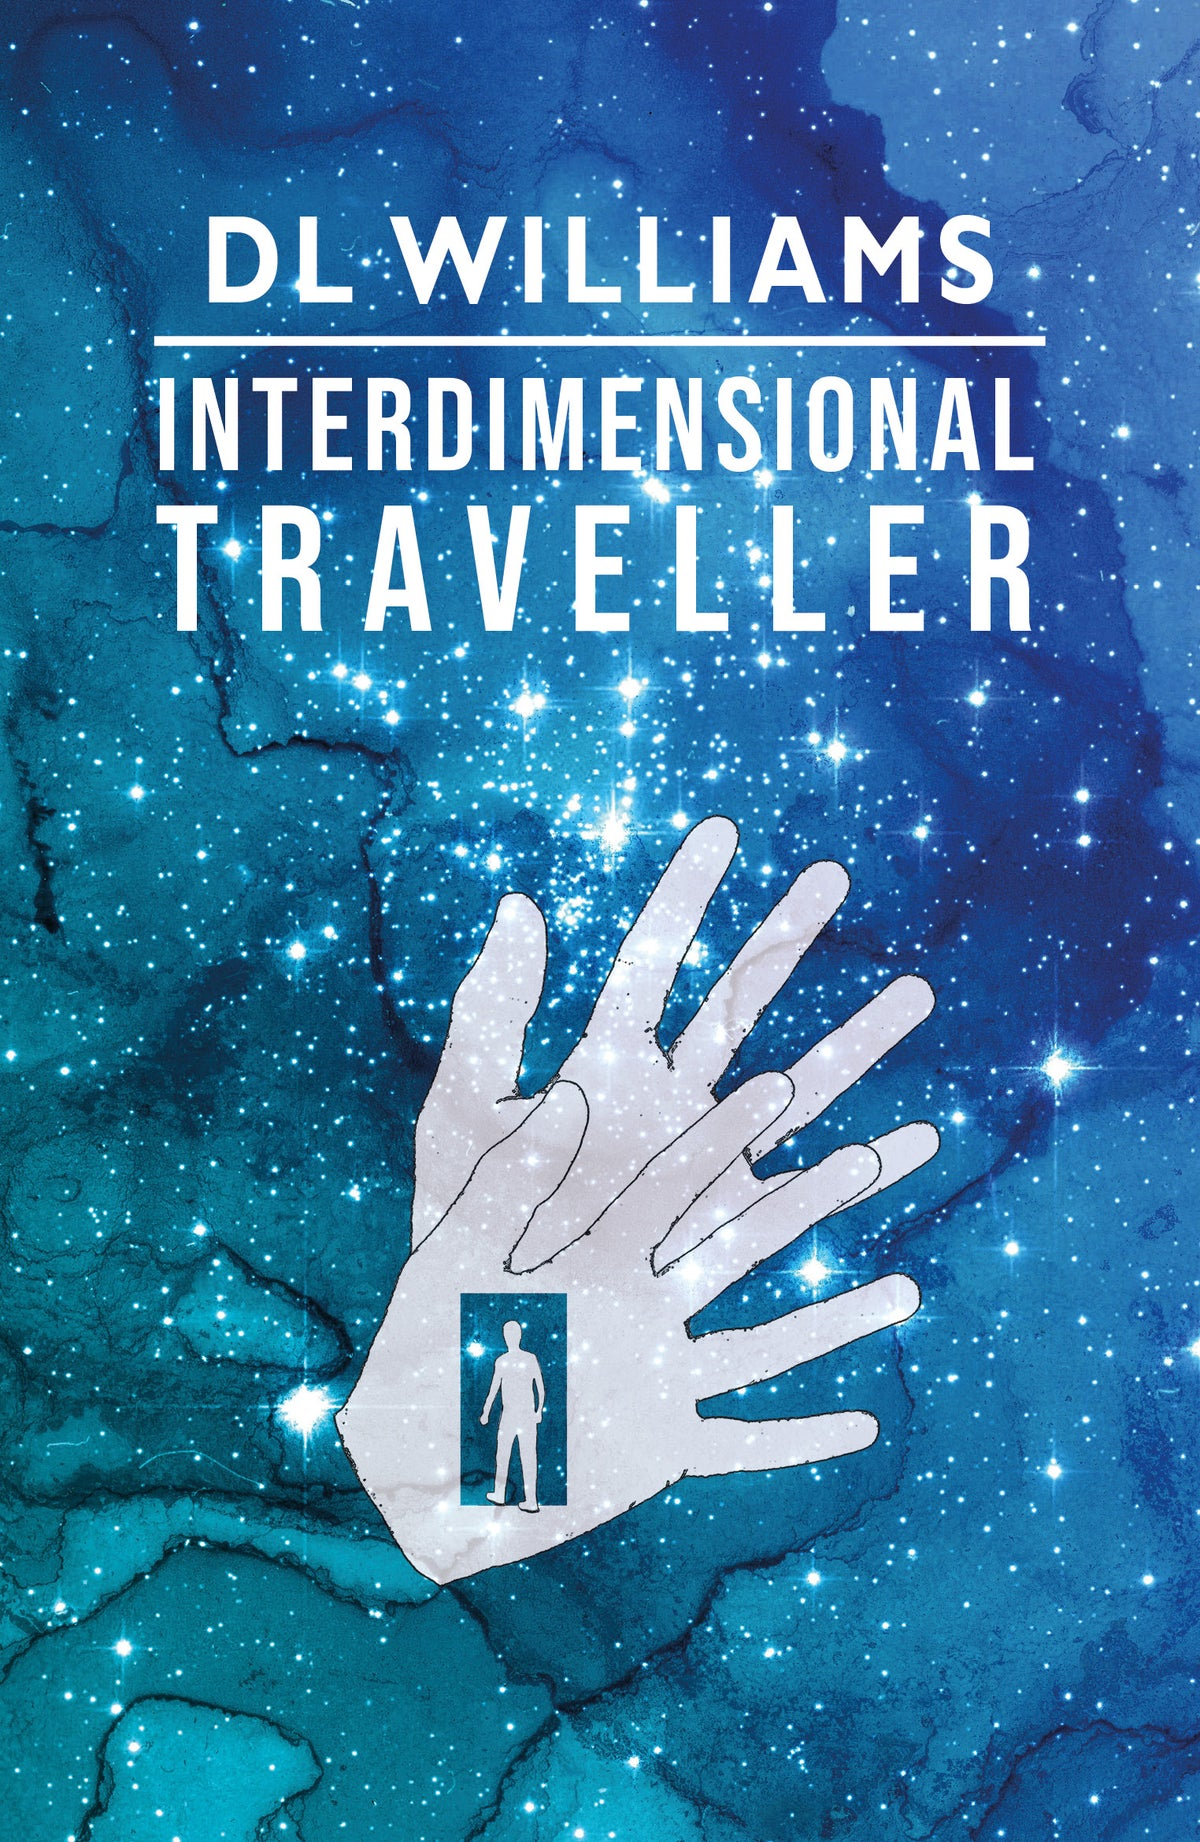 Image of Interdimensional Traveller by DL Williams